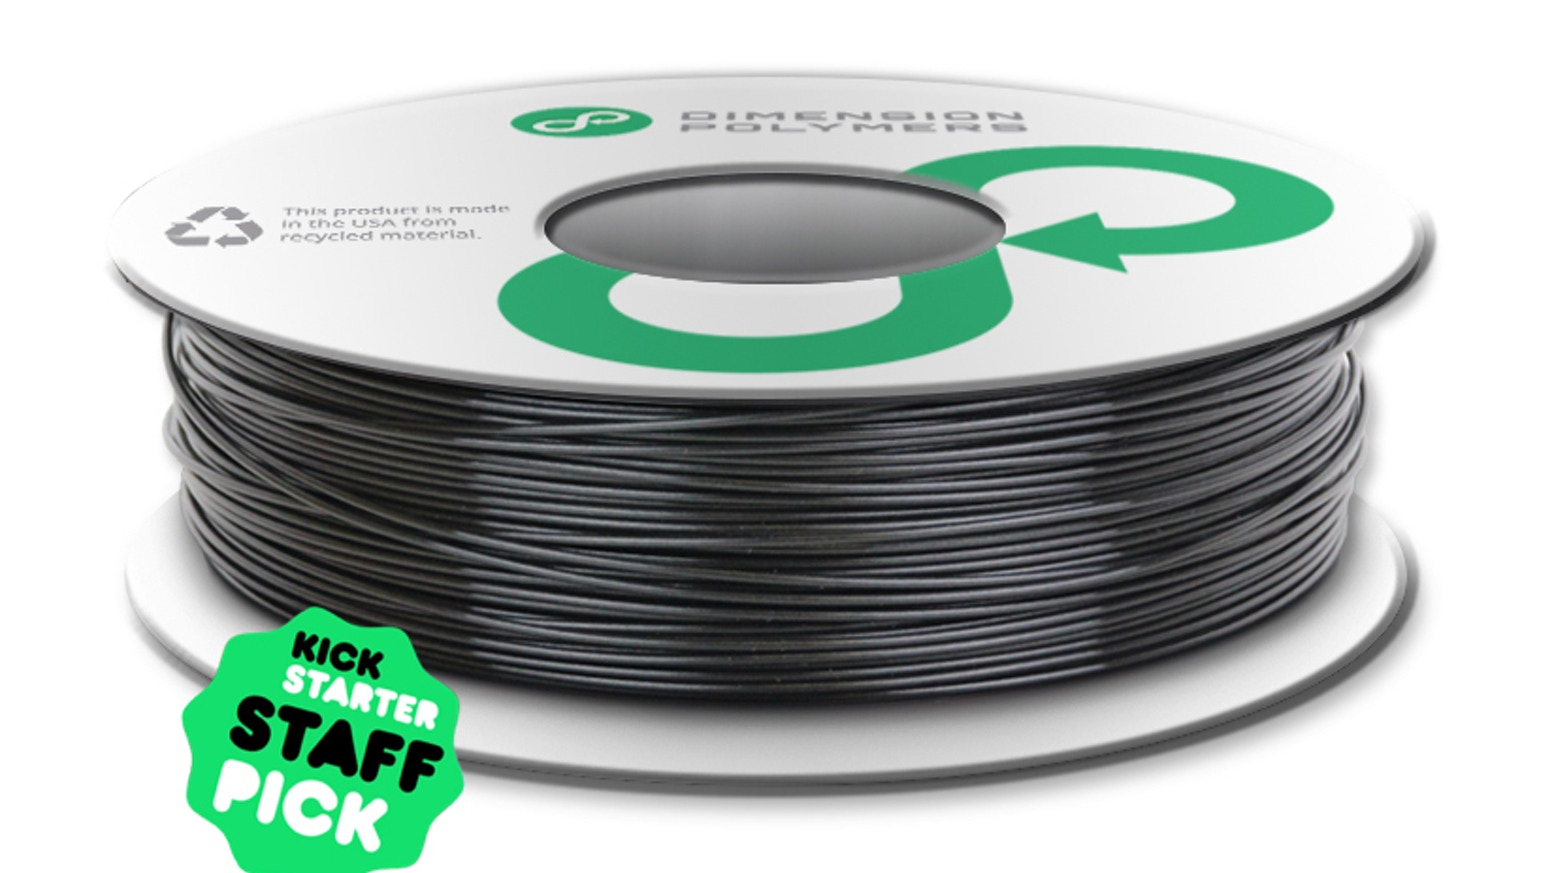 Dimension Polymers has created the first professionally engineered 3D printing filament made from recycled plastic